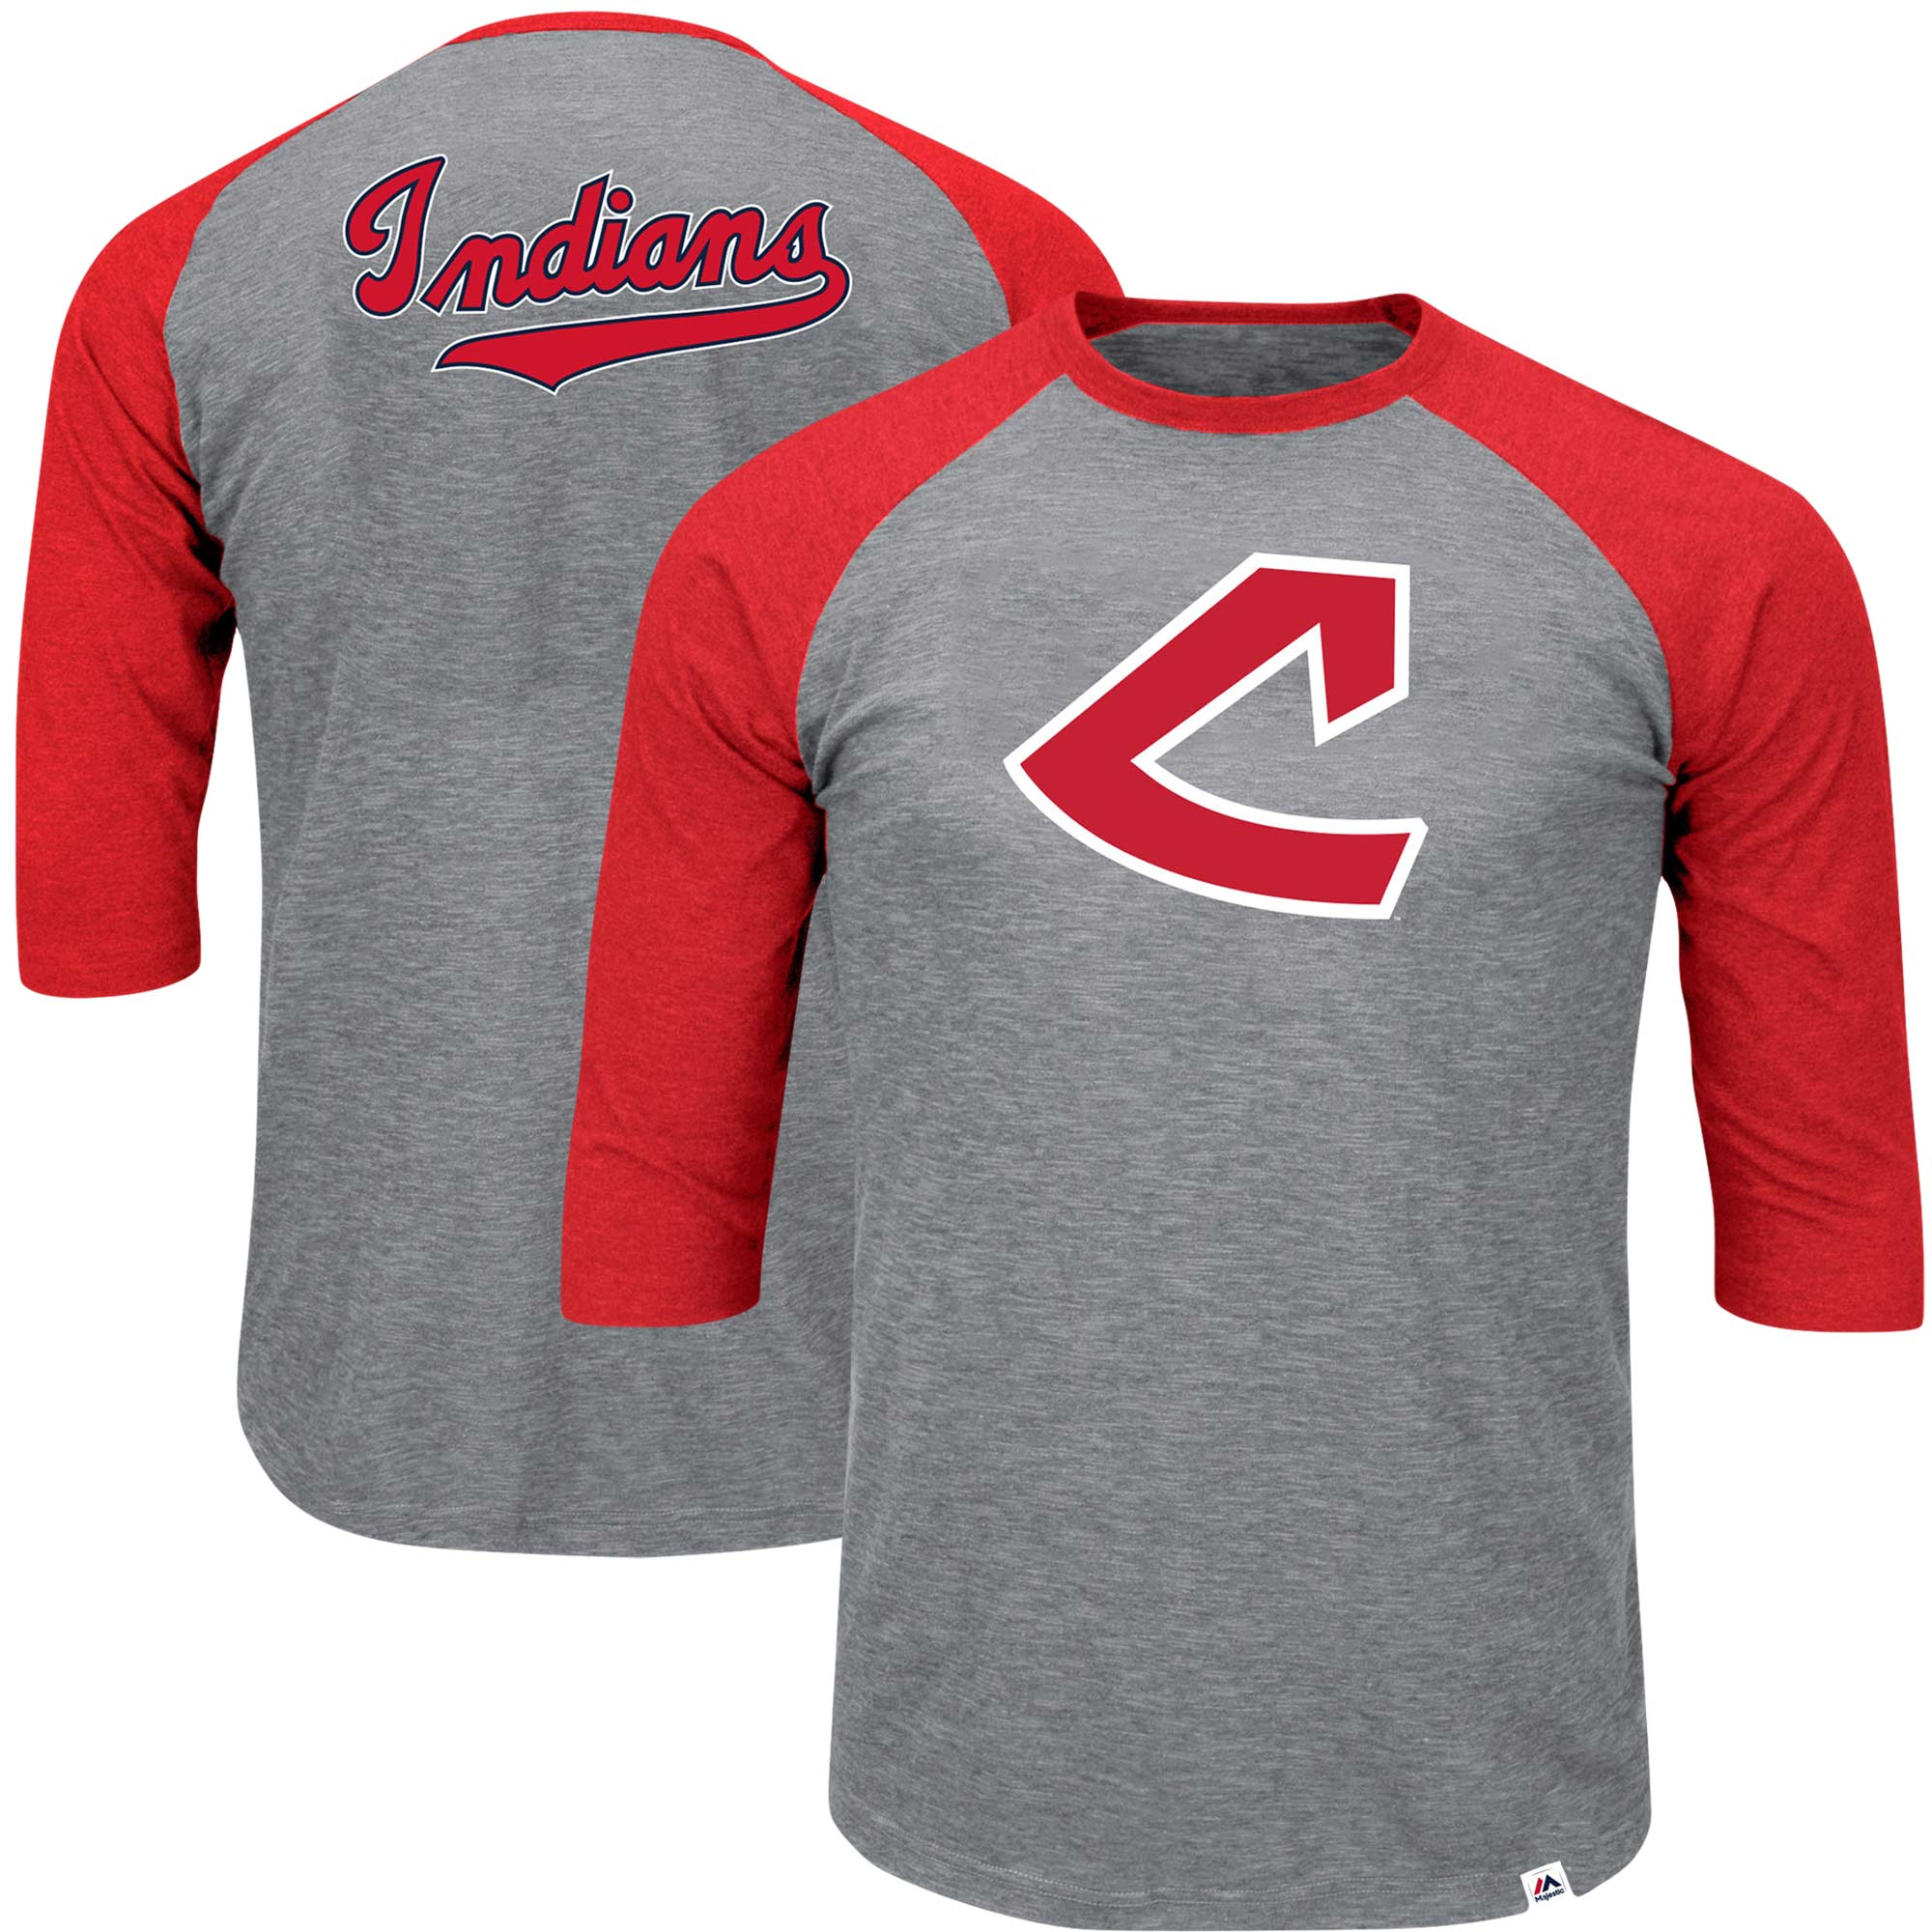 Cleveland Indians Majestic Big & Tall Cooperstown Collection Raglan 3/4-Sleeve T-Shirt - Heathered Gray/Red